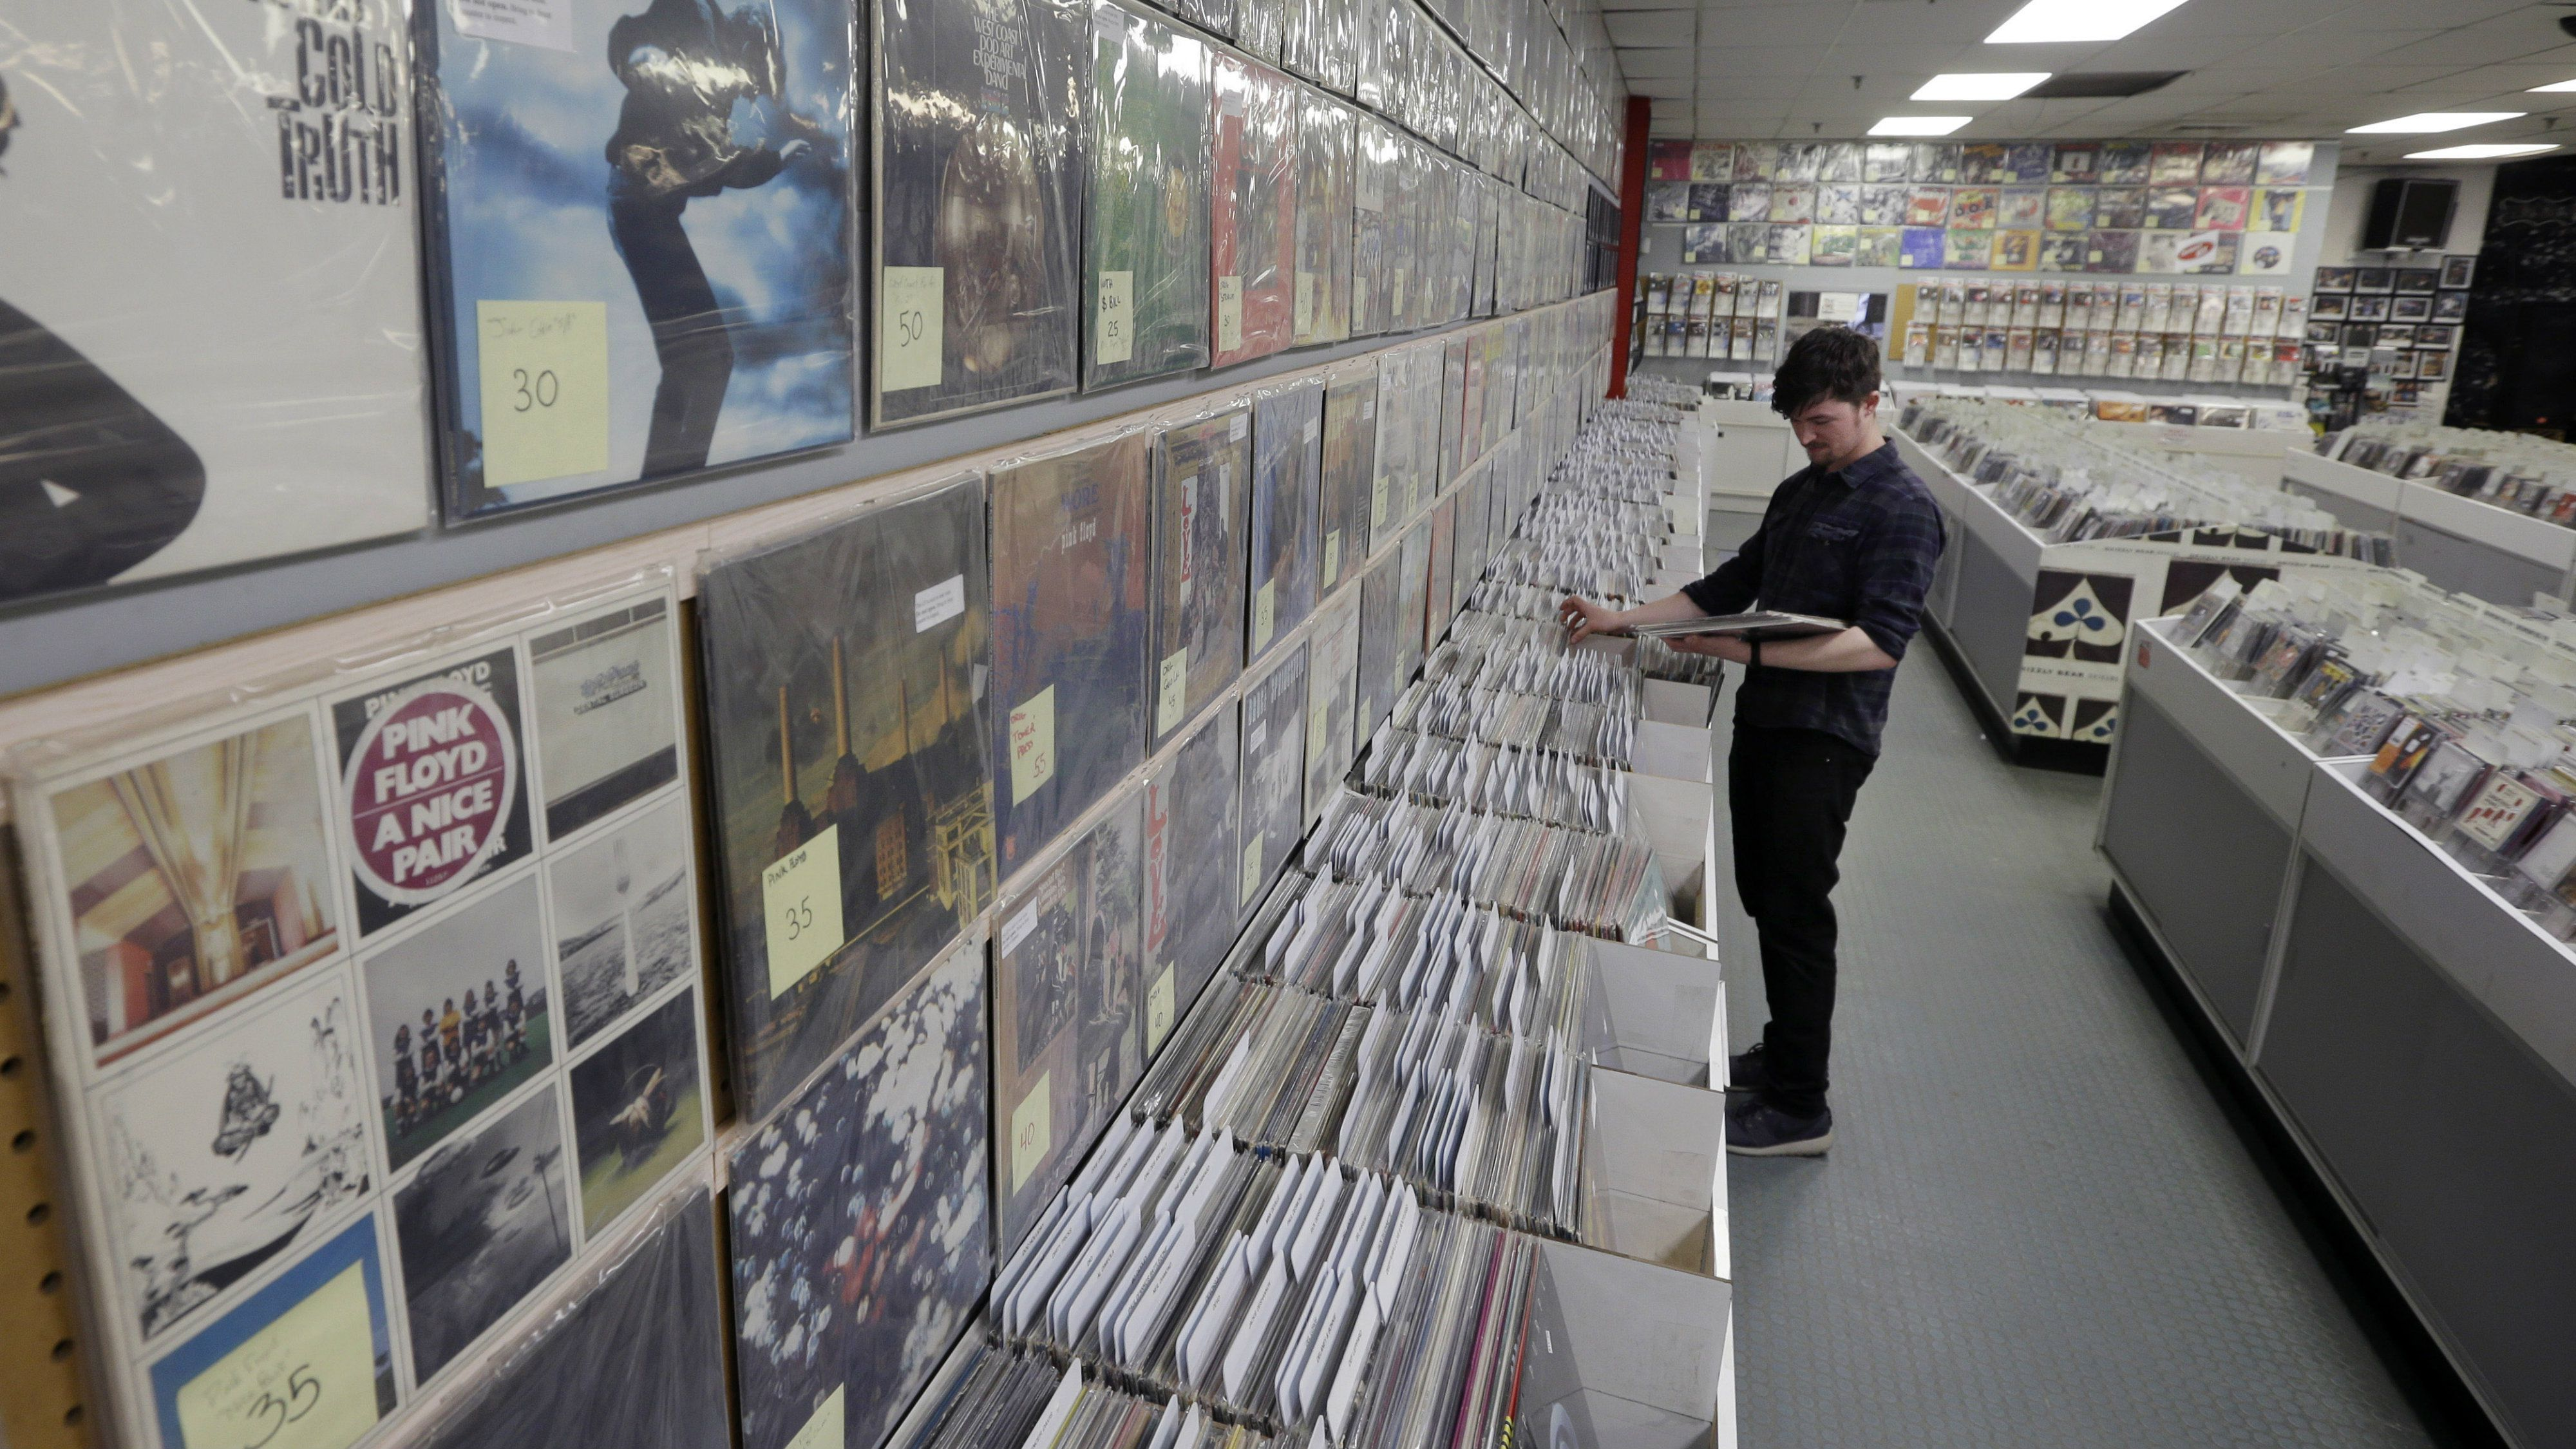 Record clerk Josh Kelly puts LP records in sales bins at Vintage Vinyl Records Tuesday, April 14, 2015